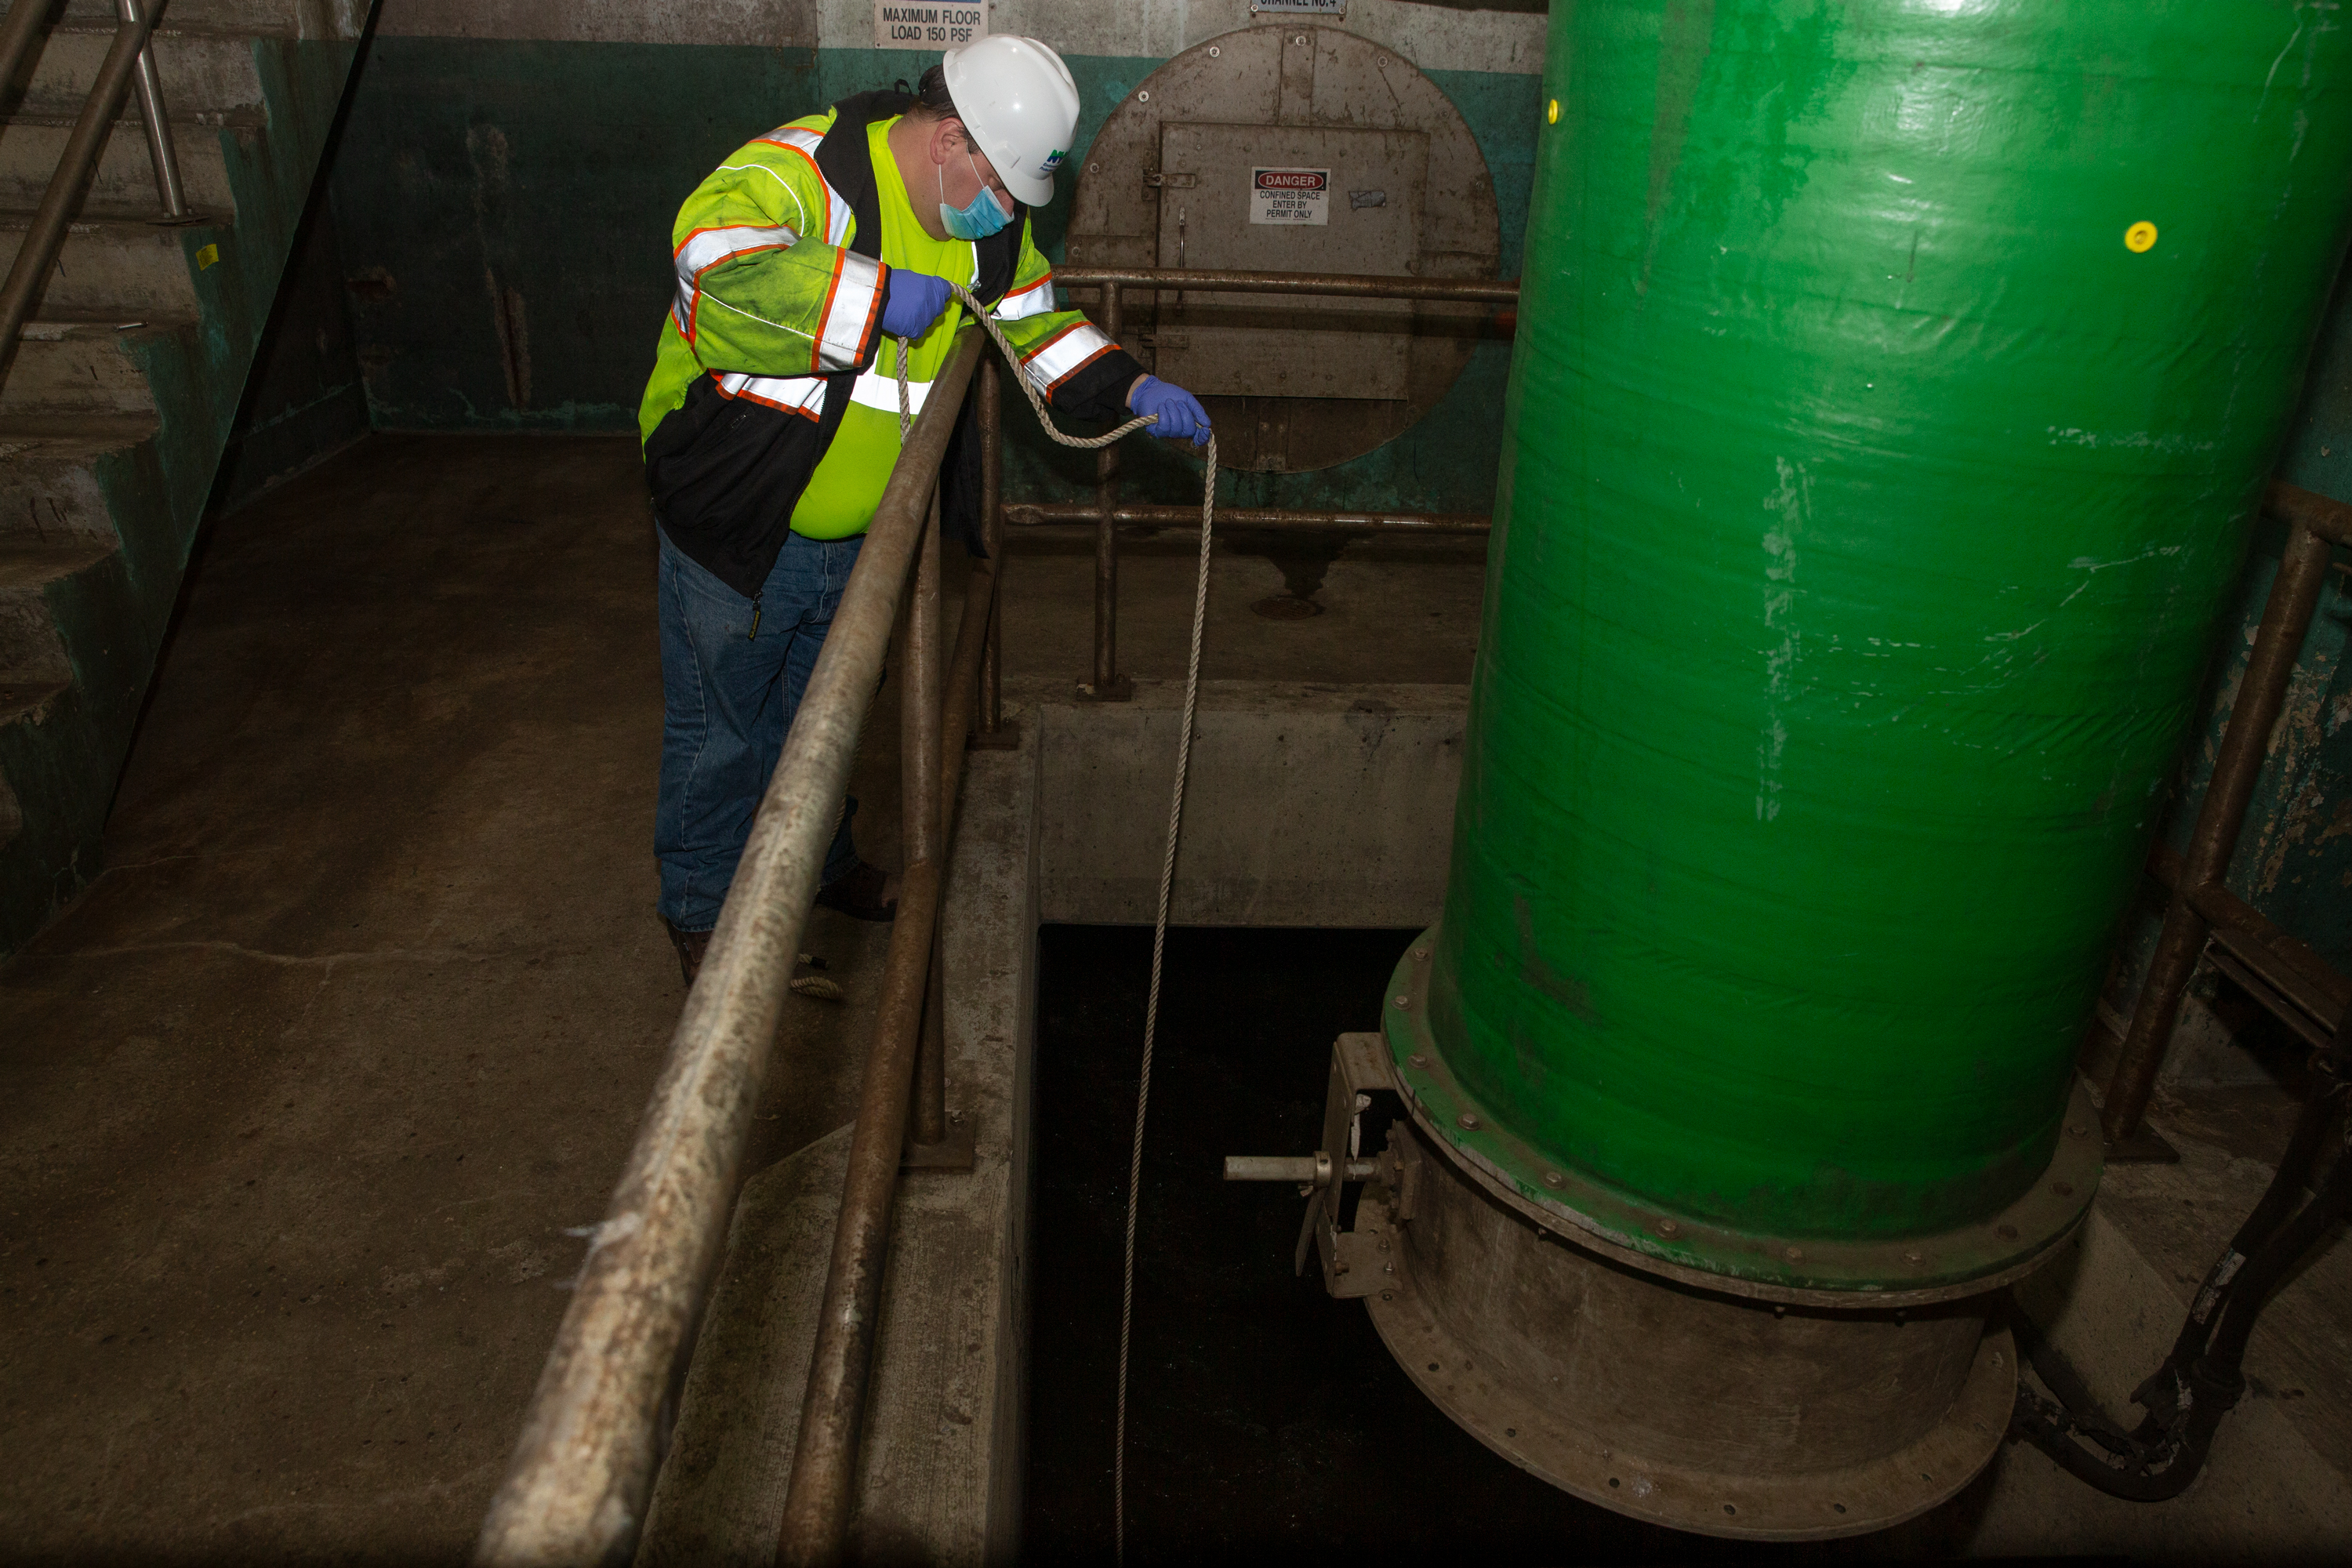 Department of Environmental Protection worker Michael Radano collects a sample from the Newtown Creek Wastewater Treatment Plant for coronavirus sample testing.